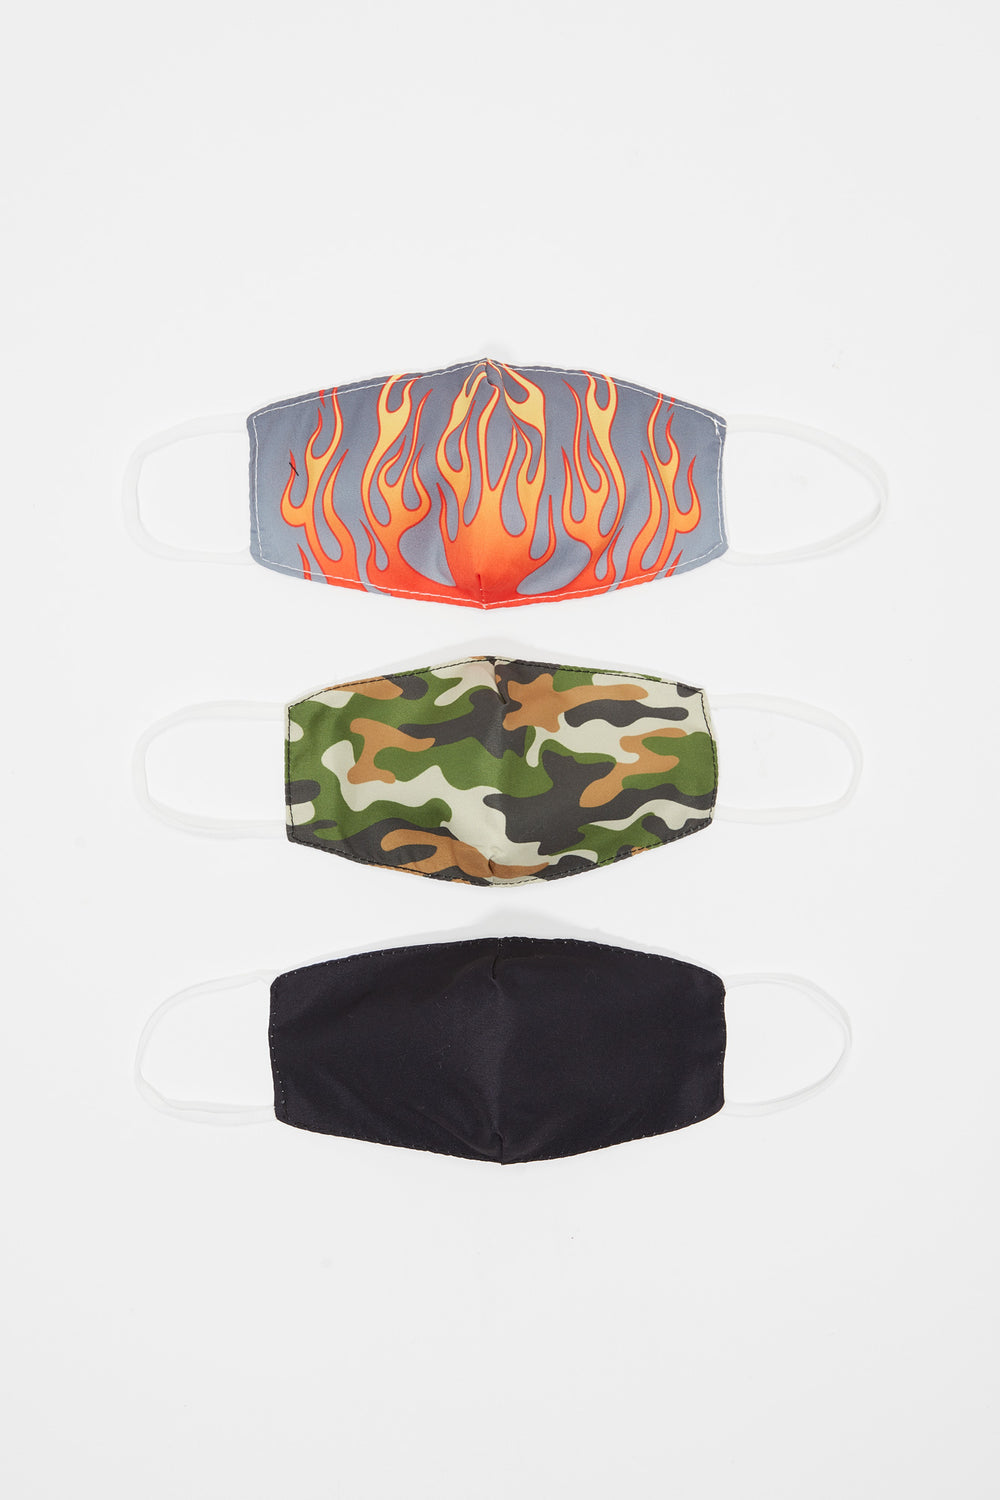 Youth Washable & Reusable Graphic Fire And Camo Protective Face Mask (3 Pack) Blue